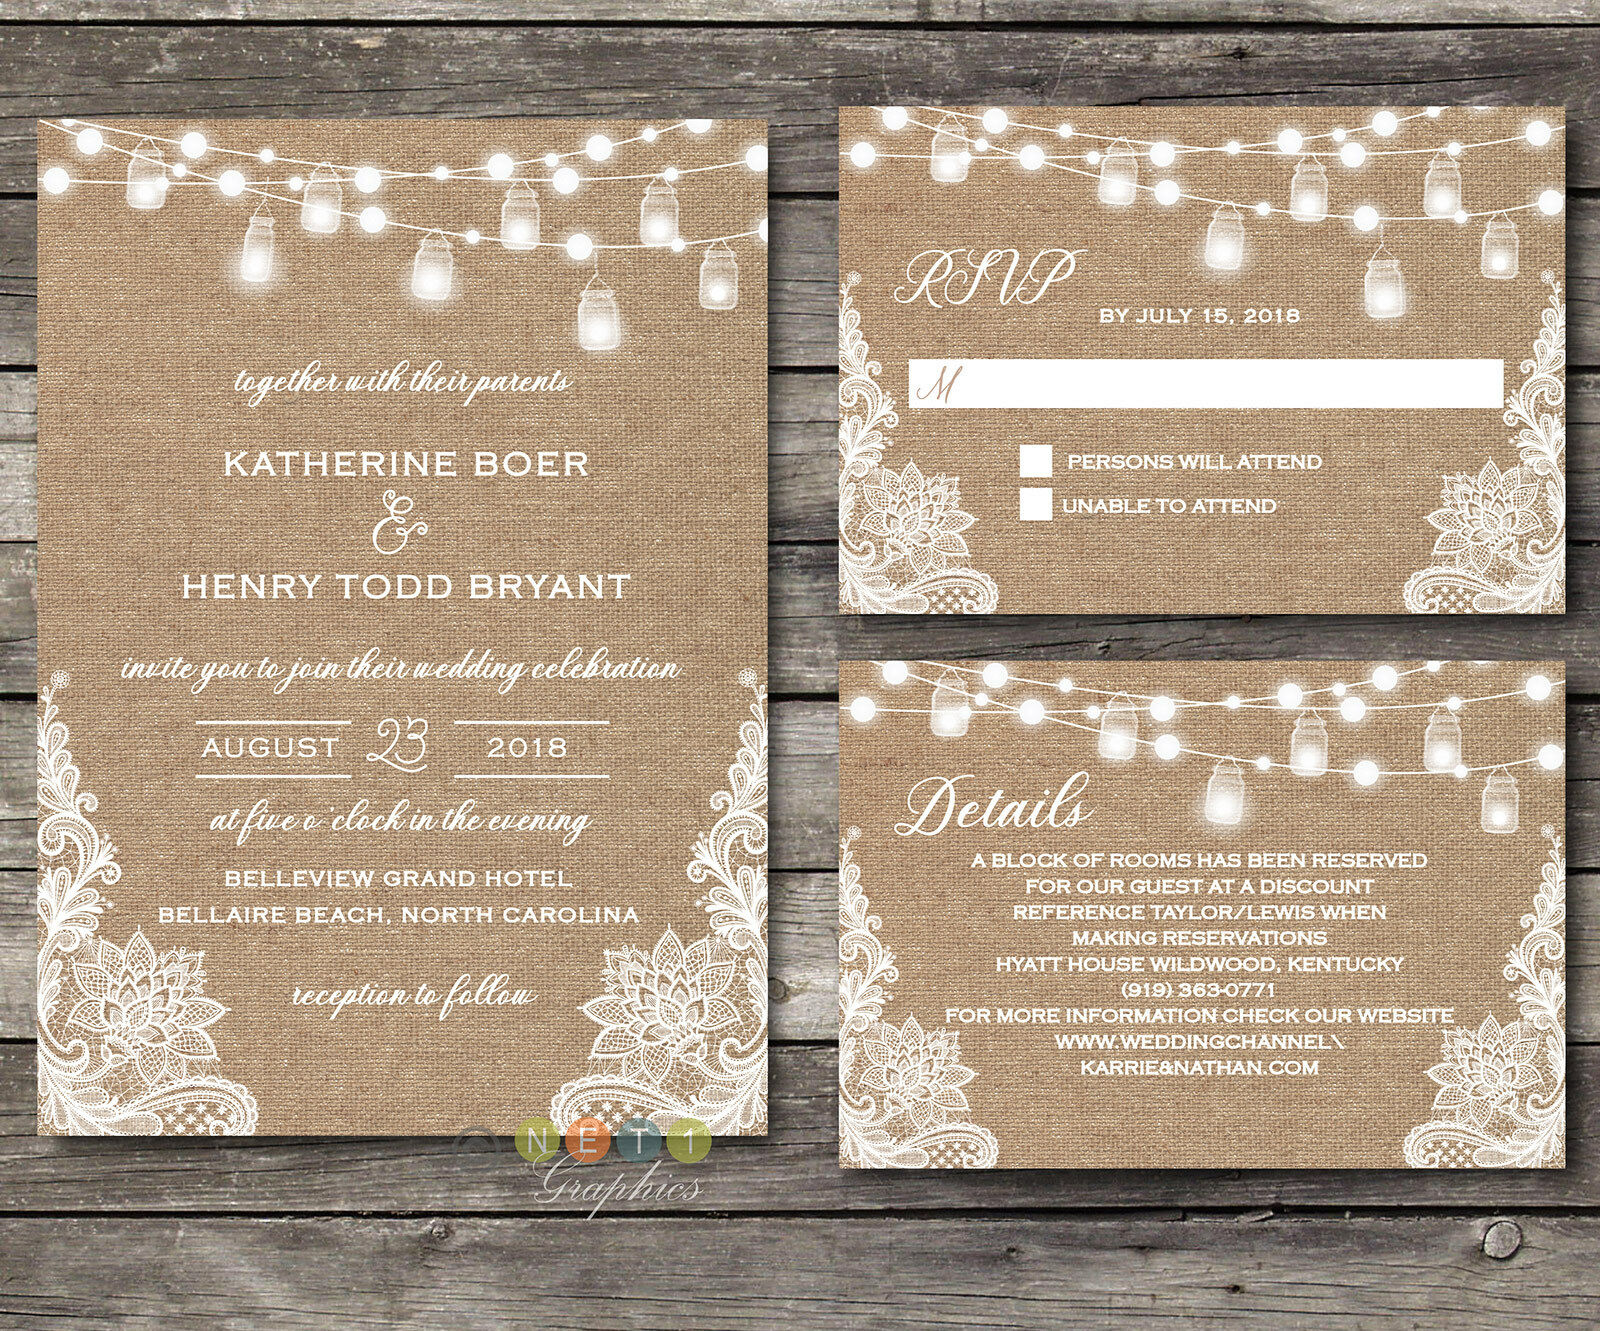 eab9d9a2a71 Personalized Rustic Burlap Lace String Lights Lace Wedding Invitations